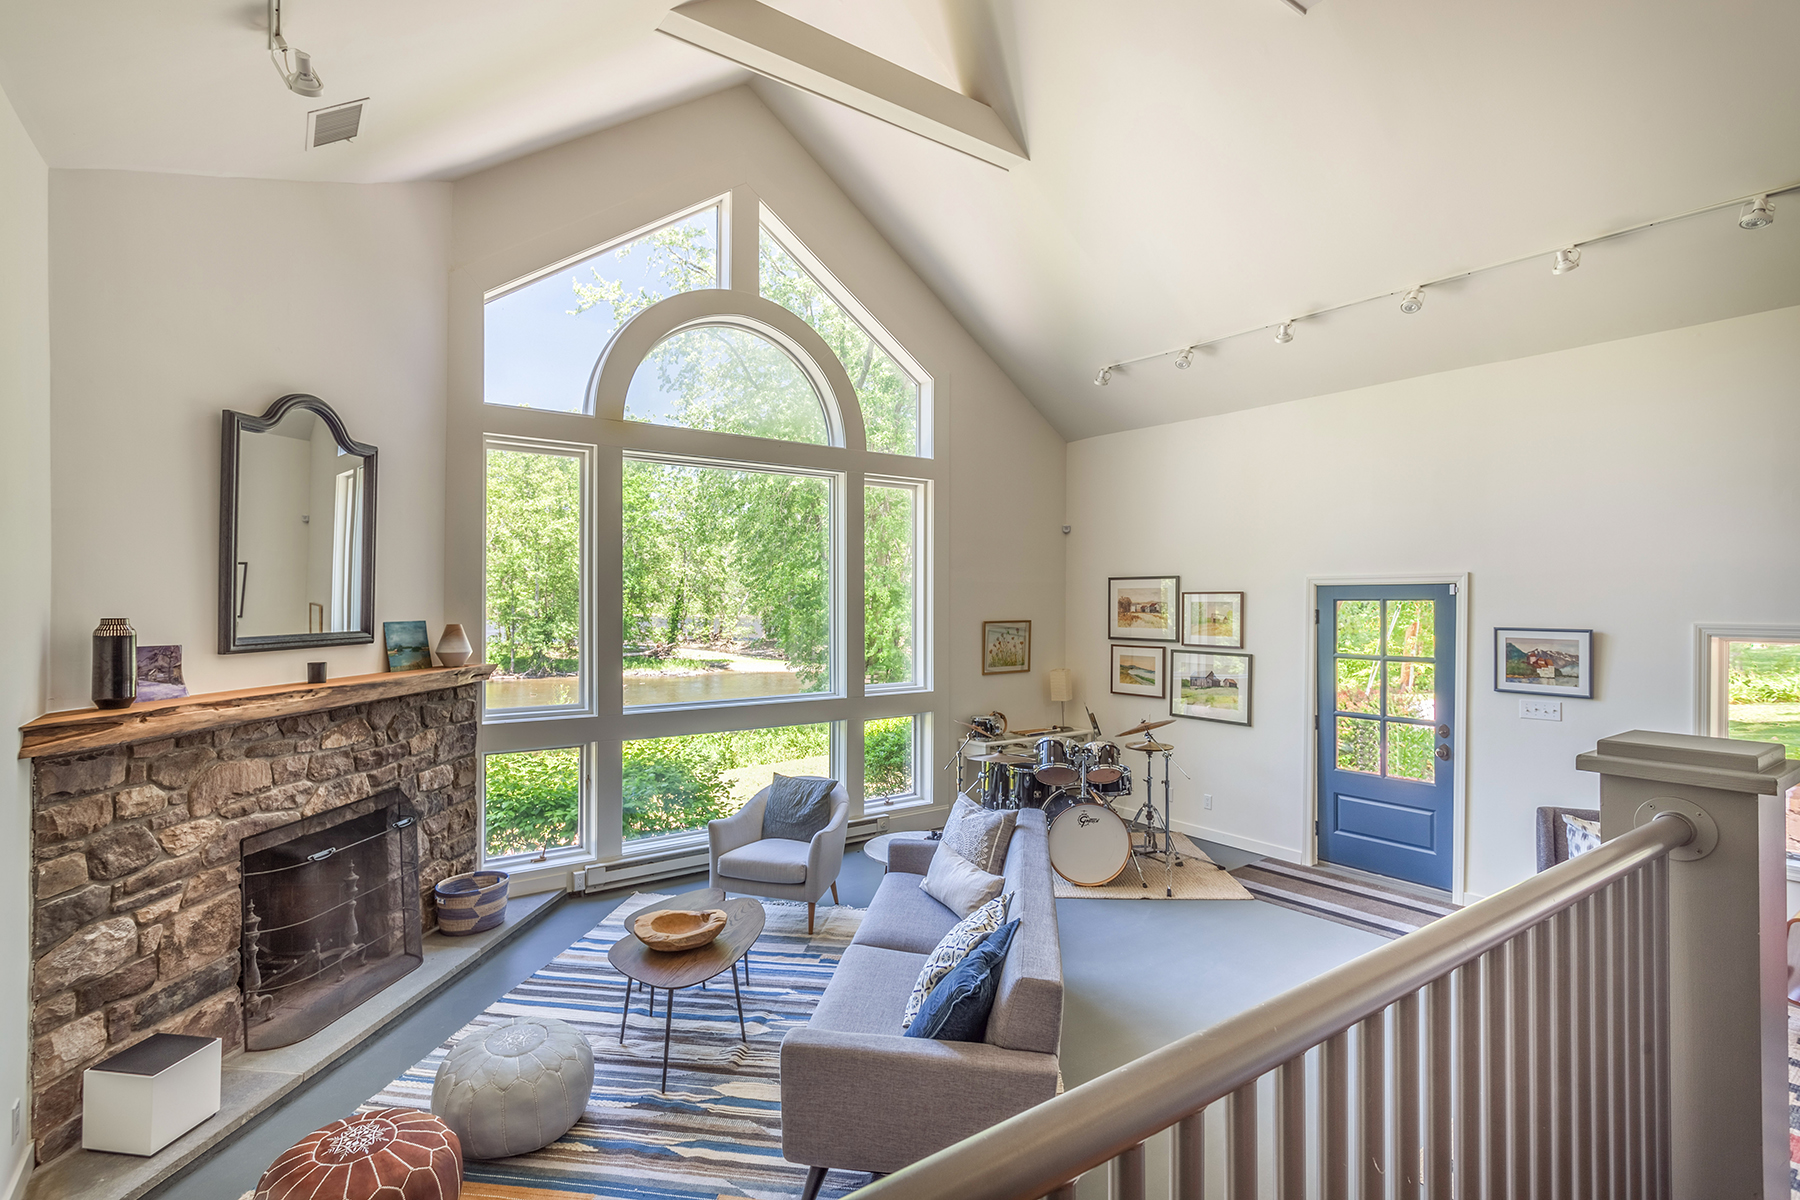 Single Family Home for Sale at New Hope, PA 3064 River Rd New Hope, Pennsylvania, 18938 United States